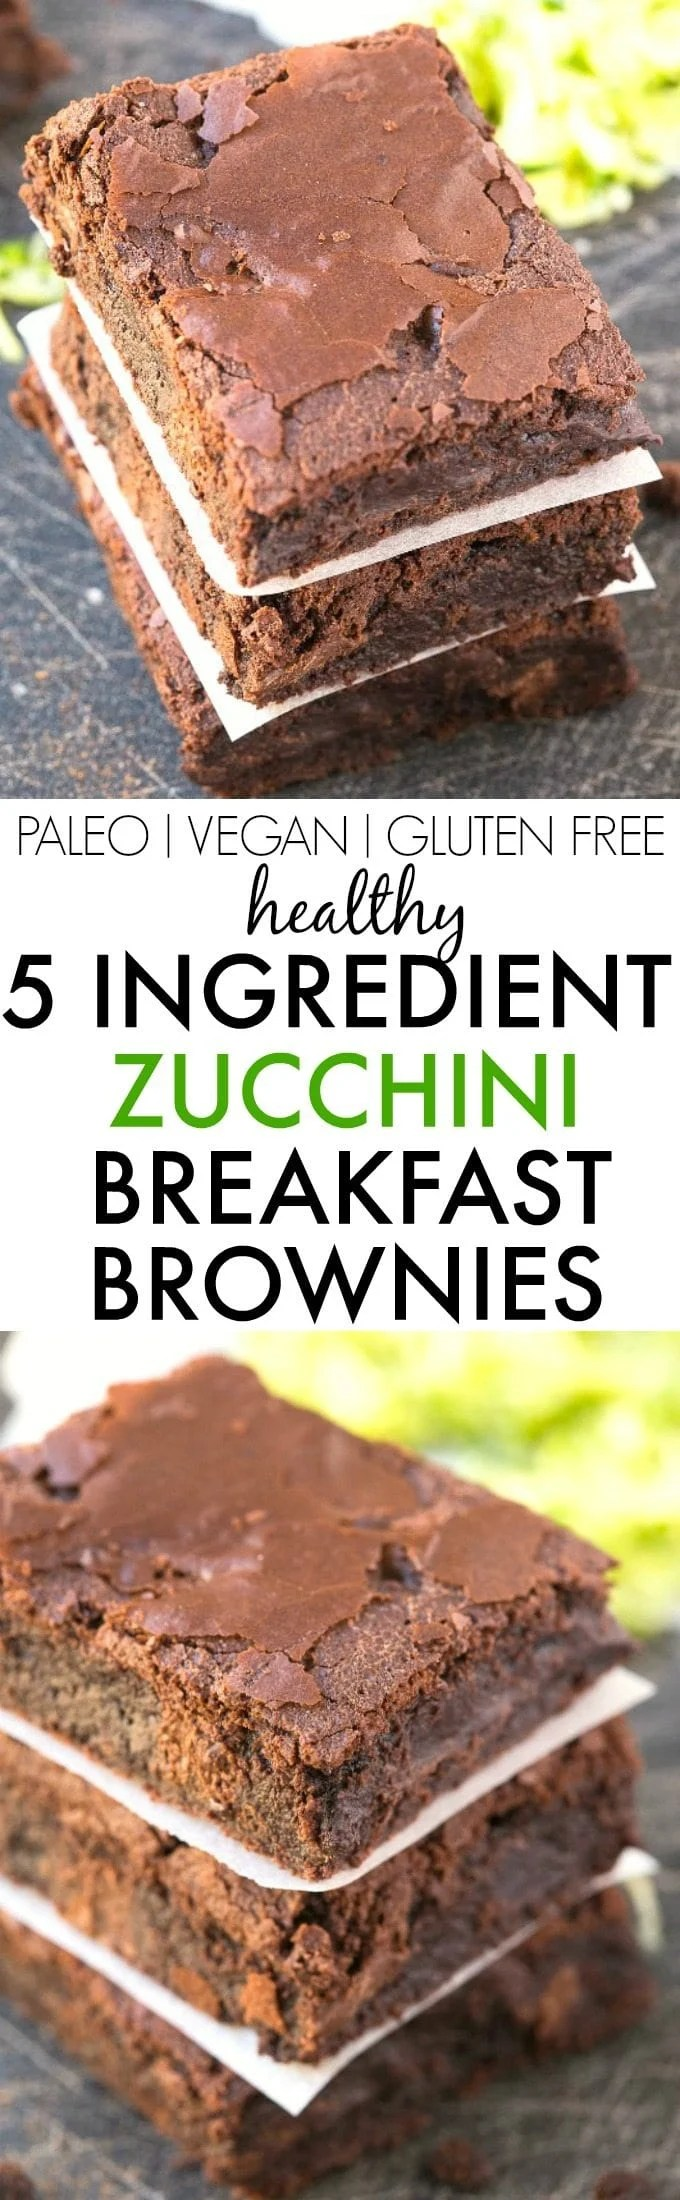 Healthy 5 Ingredient Flourless Zucchini BREAKFAST BROWNIES- Moist, gooey and secretly healthy, these super fudgy brownies have NO flour, NO grains, NO sugar and NO butter! {vegan, gluten free, paleo recipe}- thebigmansworld.com